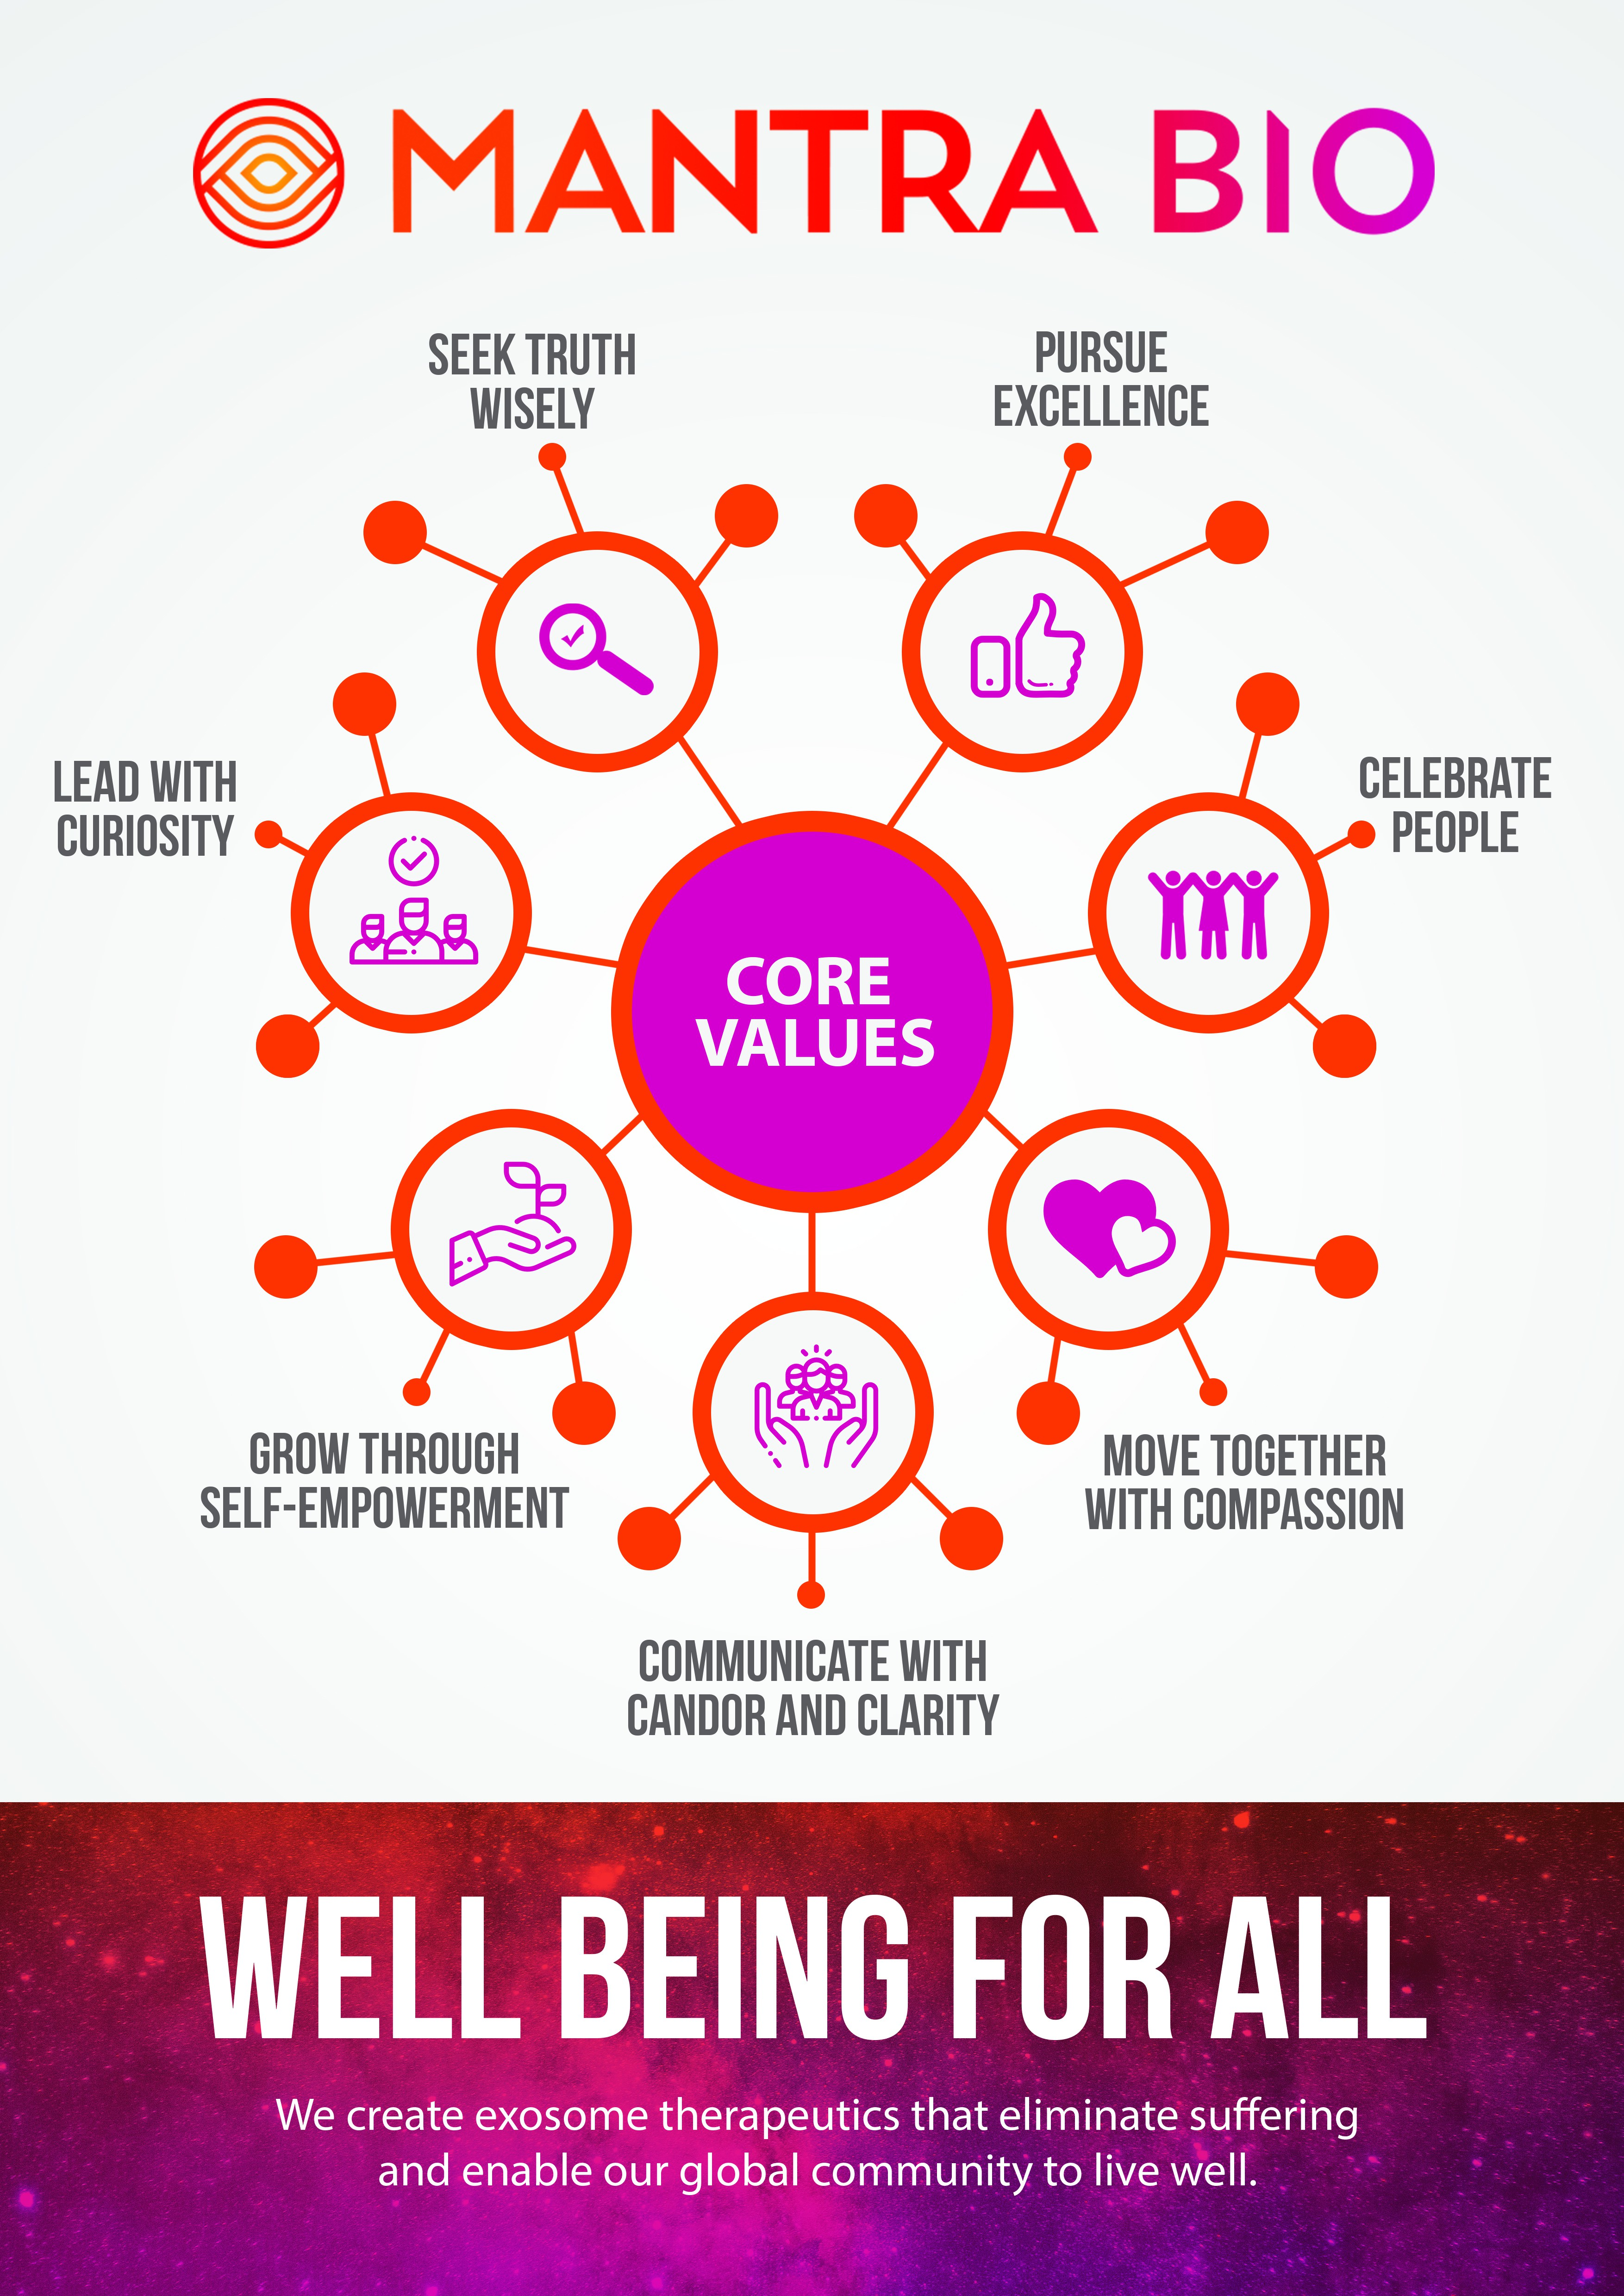 Design a Values/Mission Poster that inspires Well Being for All